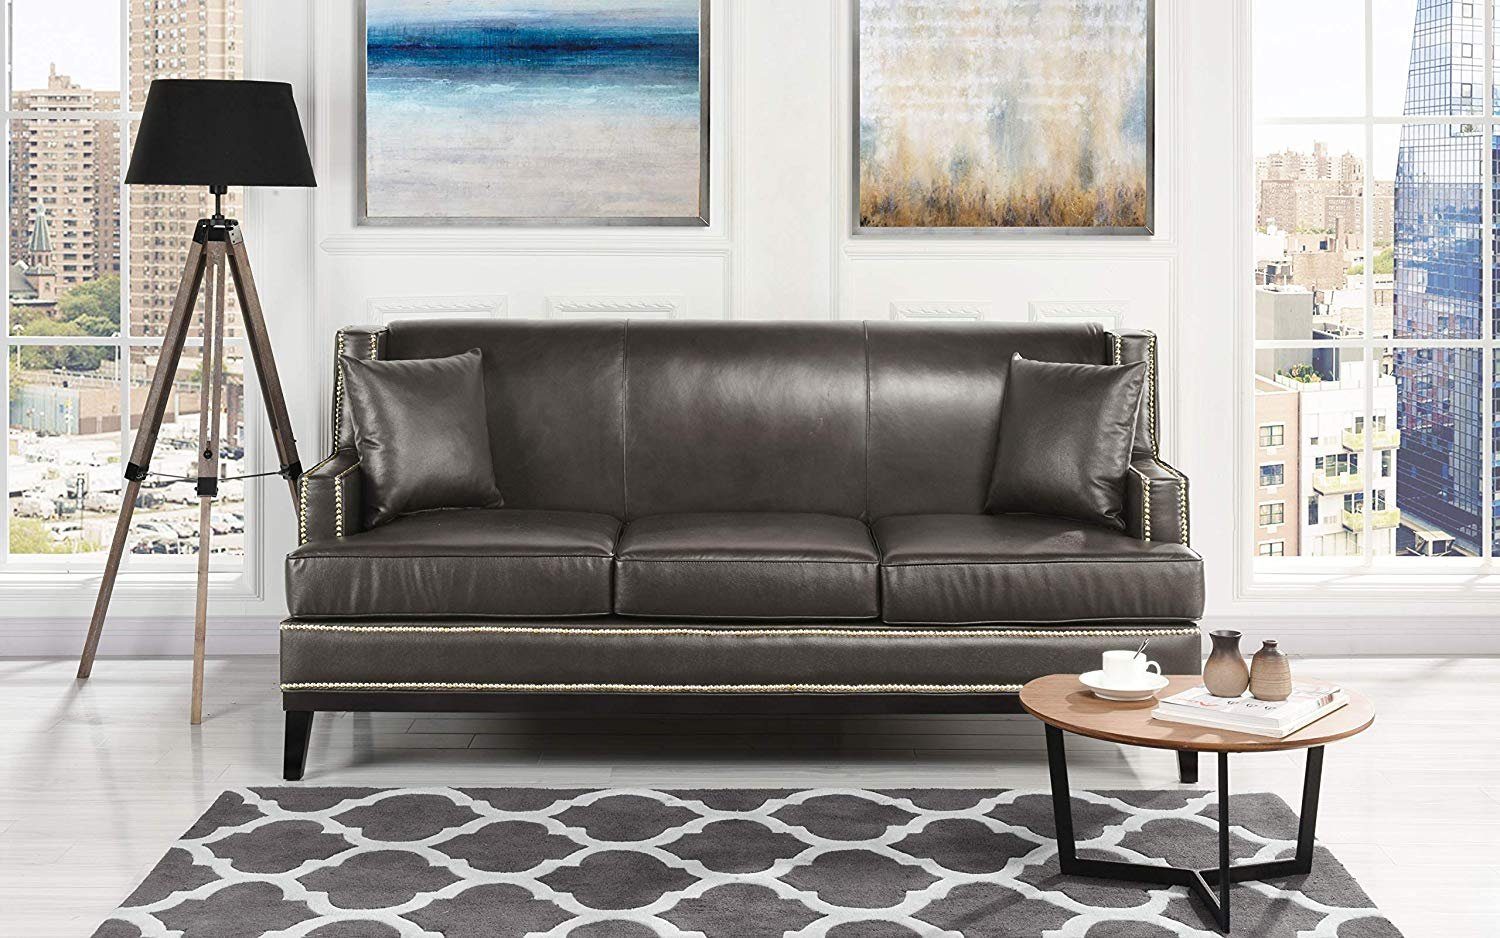 Details about Classic Leather Sofa Nailhead Trim Detail, Modern Couch (Grey)